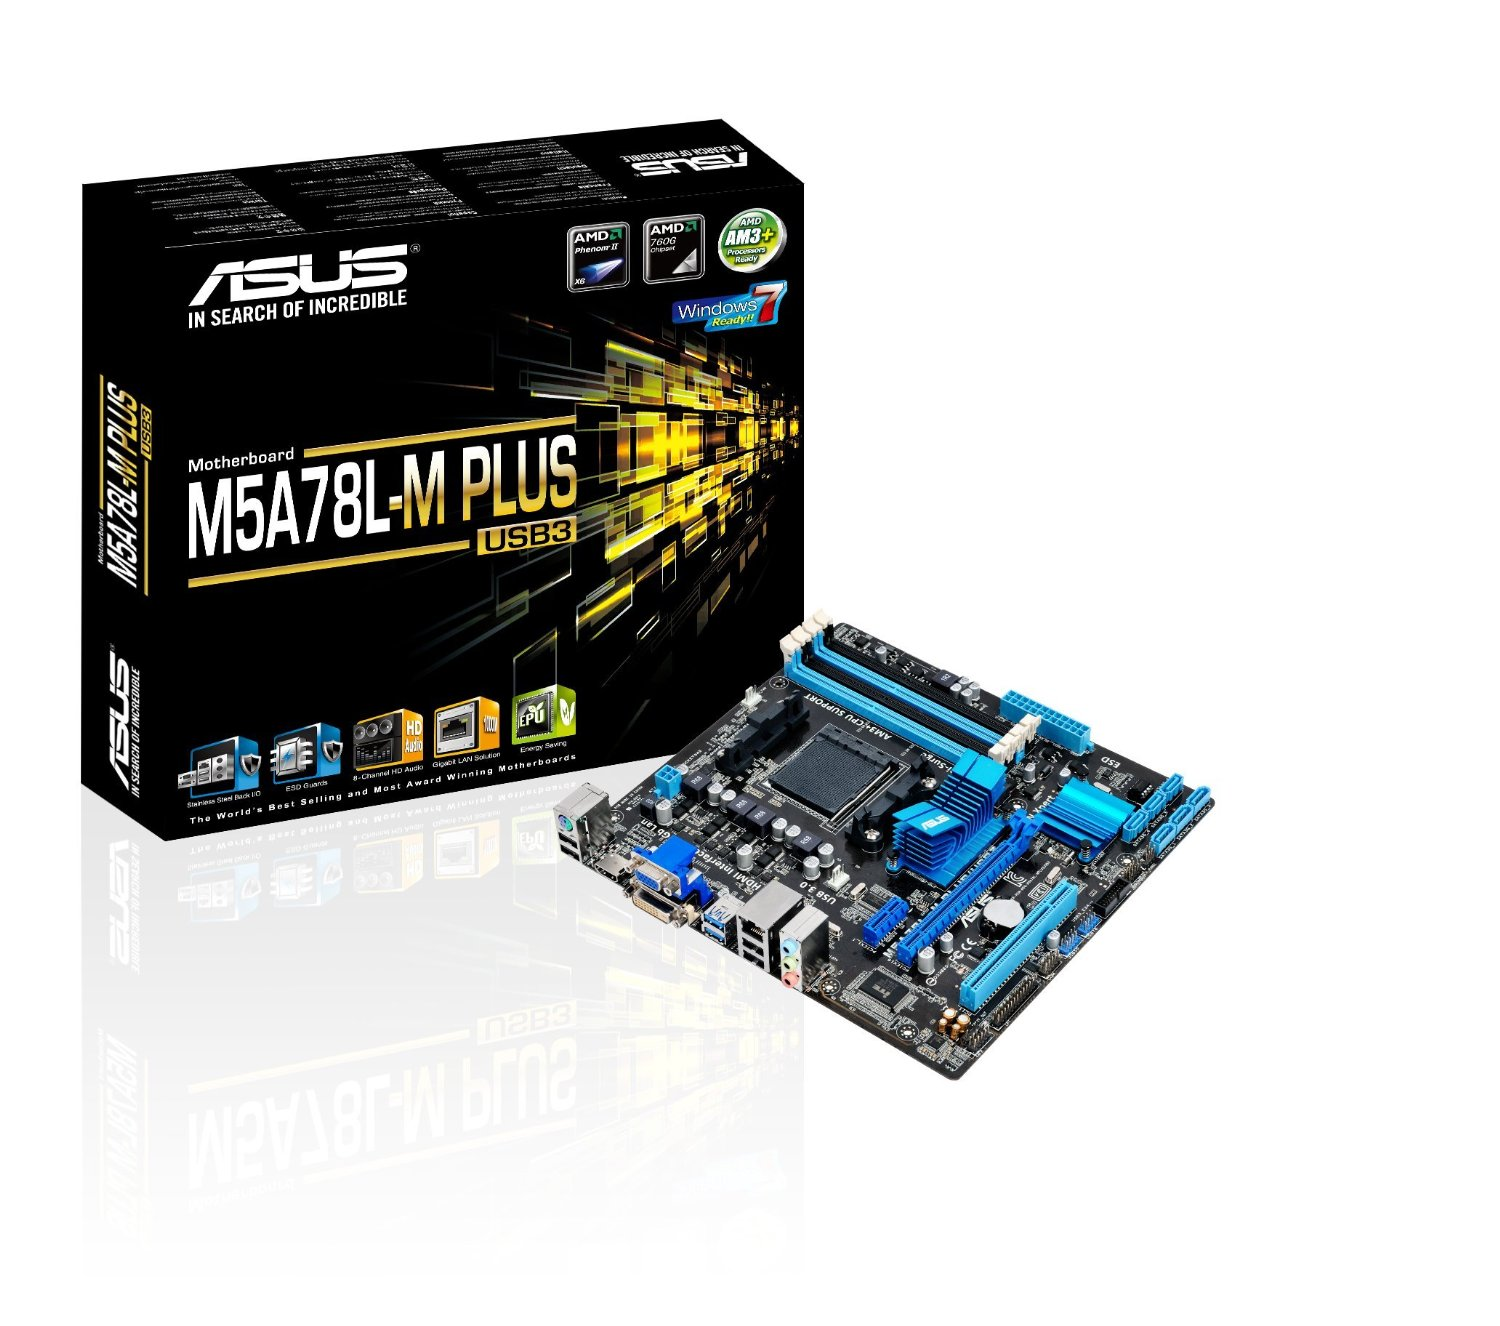 asus m5a78l m plus usb3 am3 ddr3 hdmi 760g microatx motherboard 97 asus m5a78l m plus usb3 am3 ddr3 hdmi 760g microatx motherboard  at aneh.co